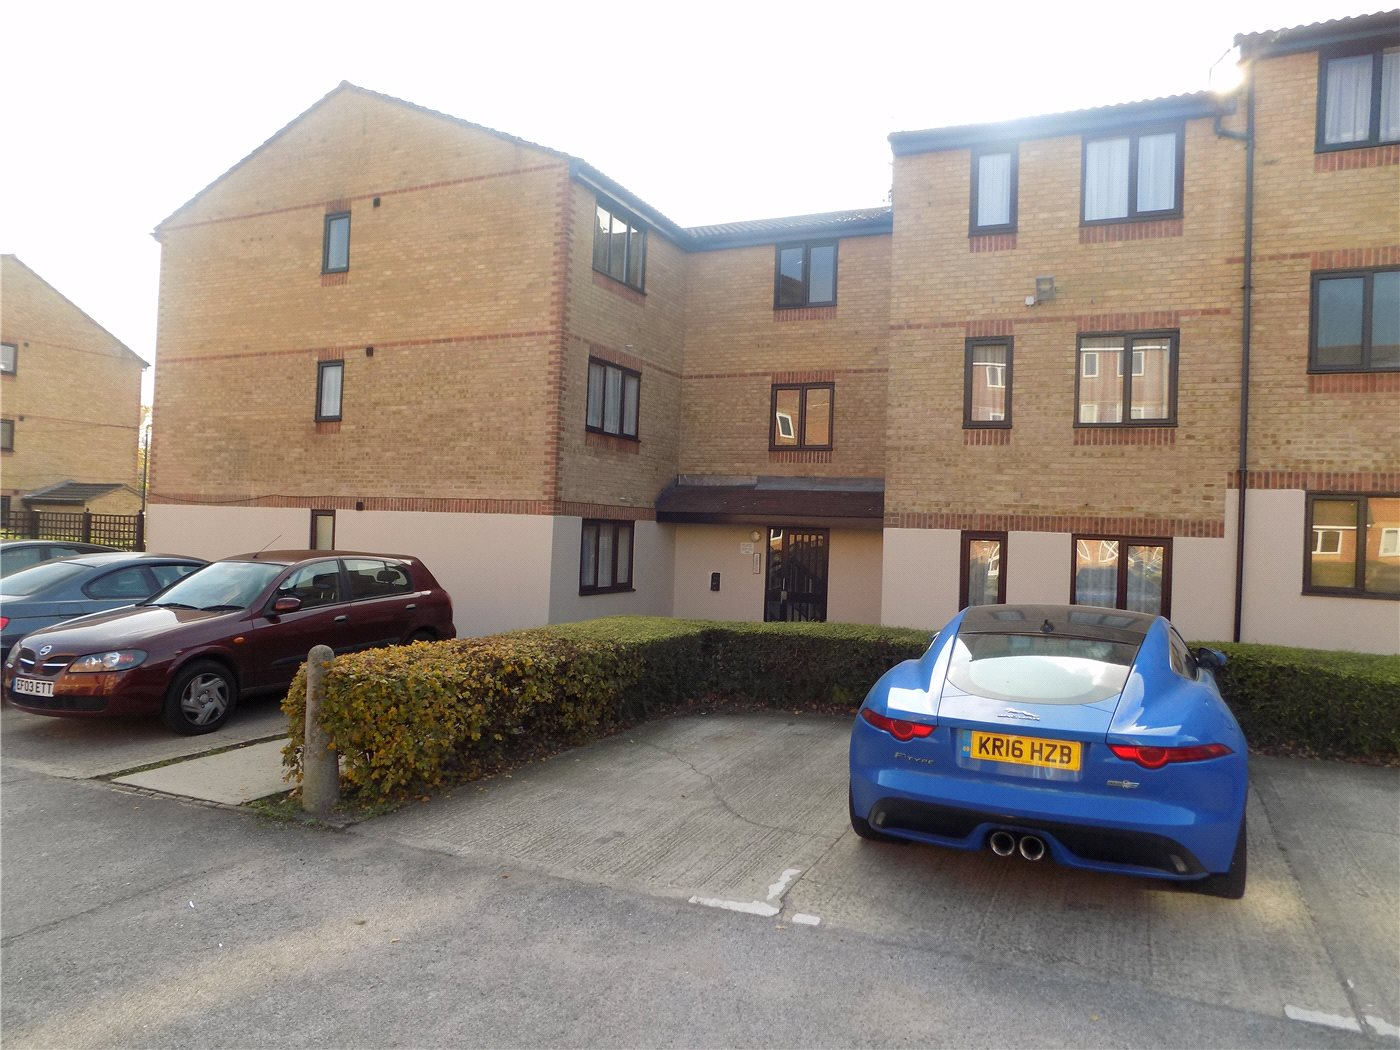 2 Bedrooms Flat for sale in Linwood Crescent, Enfield, EN1